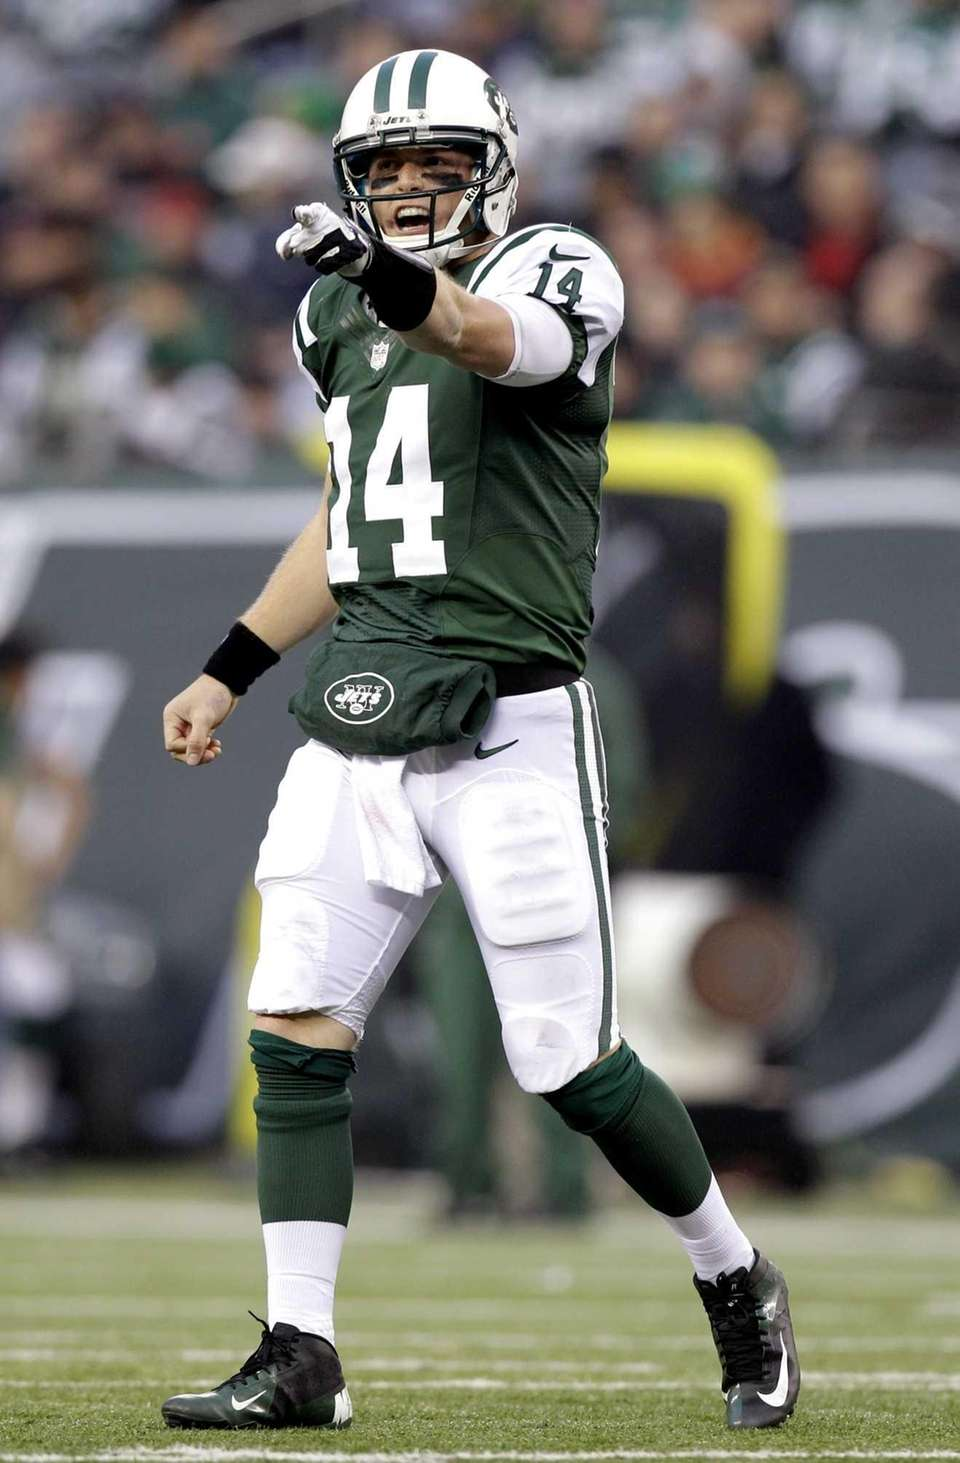 Jets quarterback Greg McElroy gestures during the second